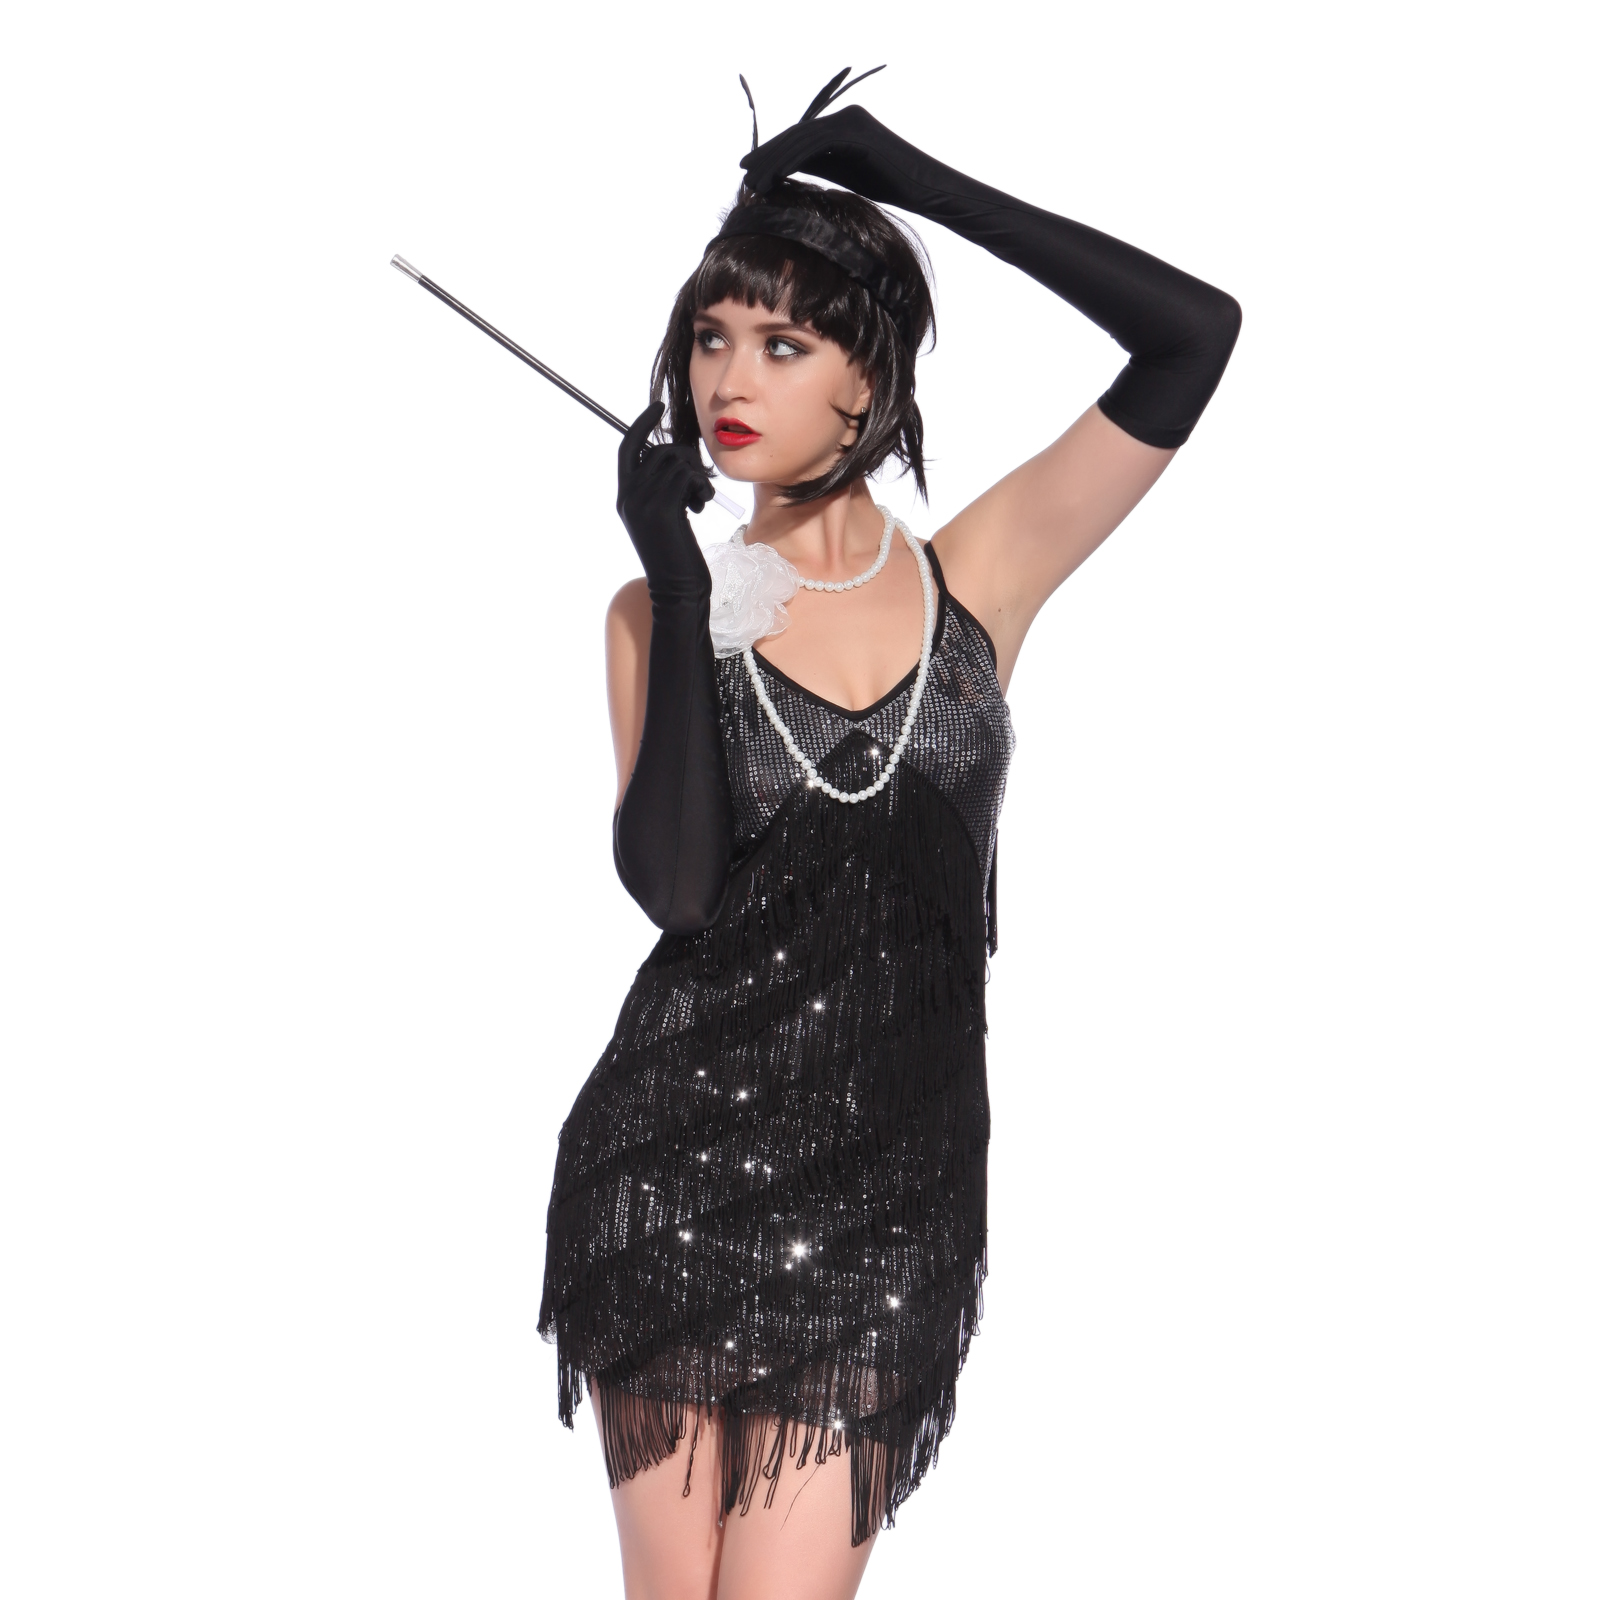 f5dd335120d1 Ladies Flapper Costume 20s 30s Charleston Great Gatsby Jazz Fancy Dress  Outfit | eBay